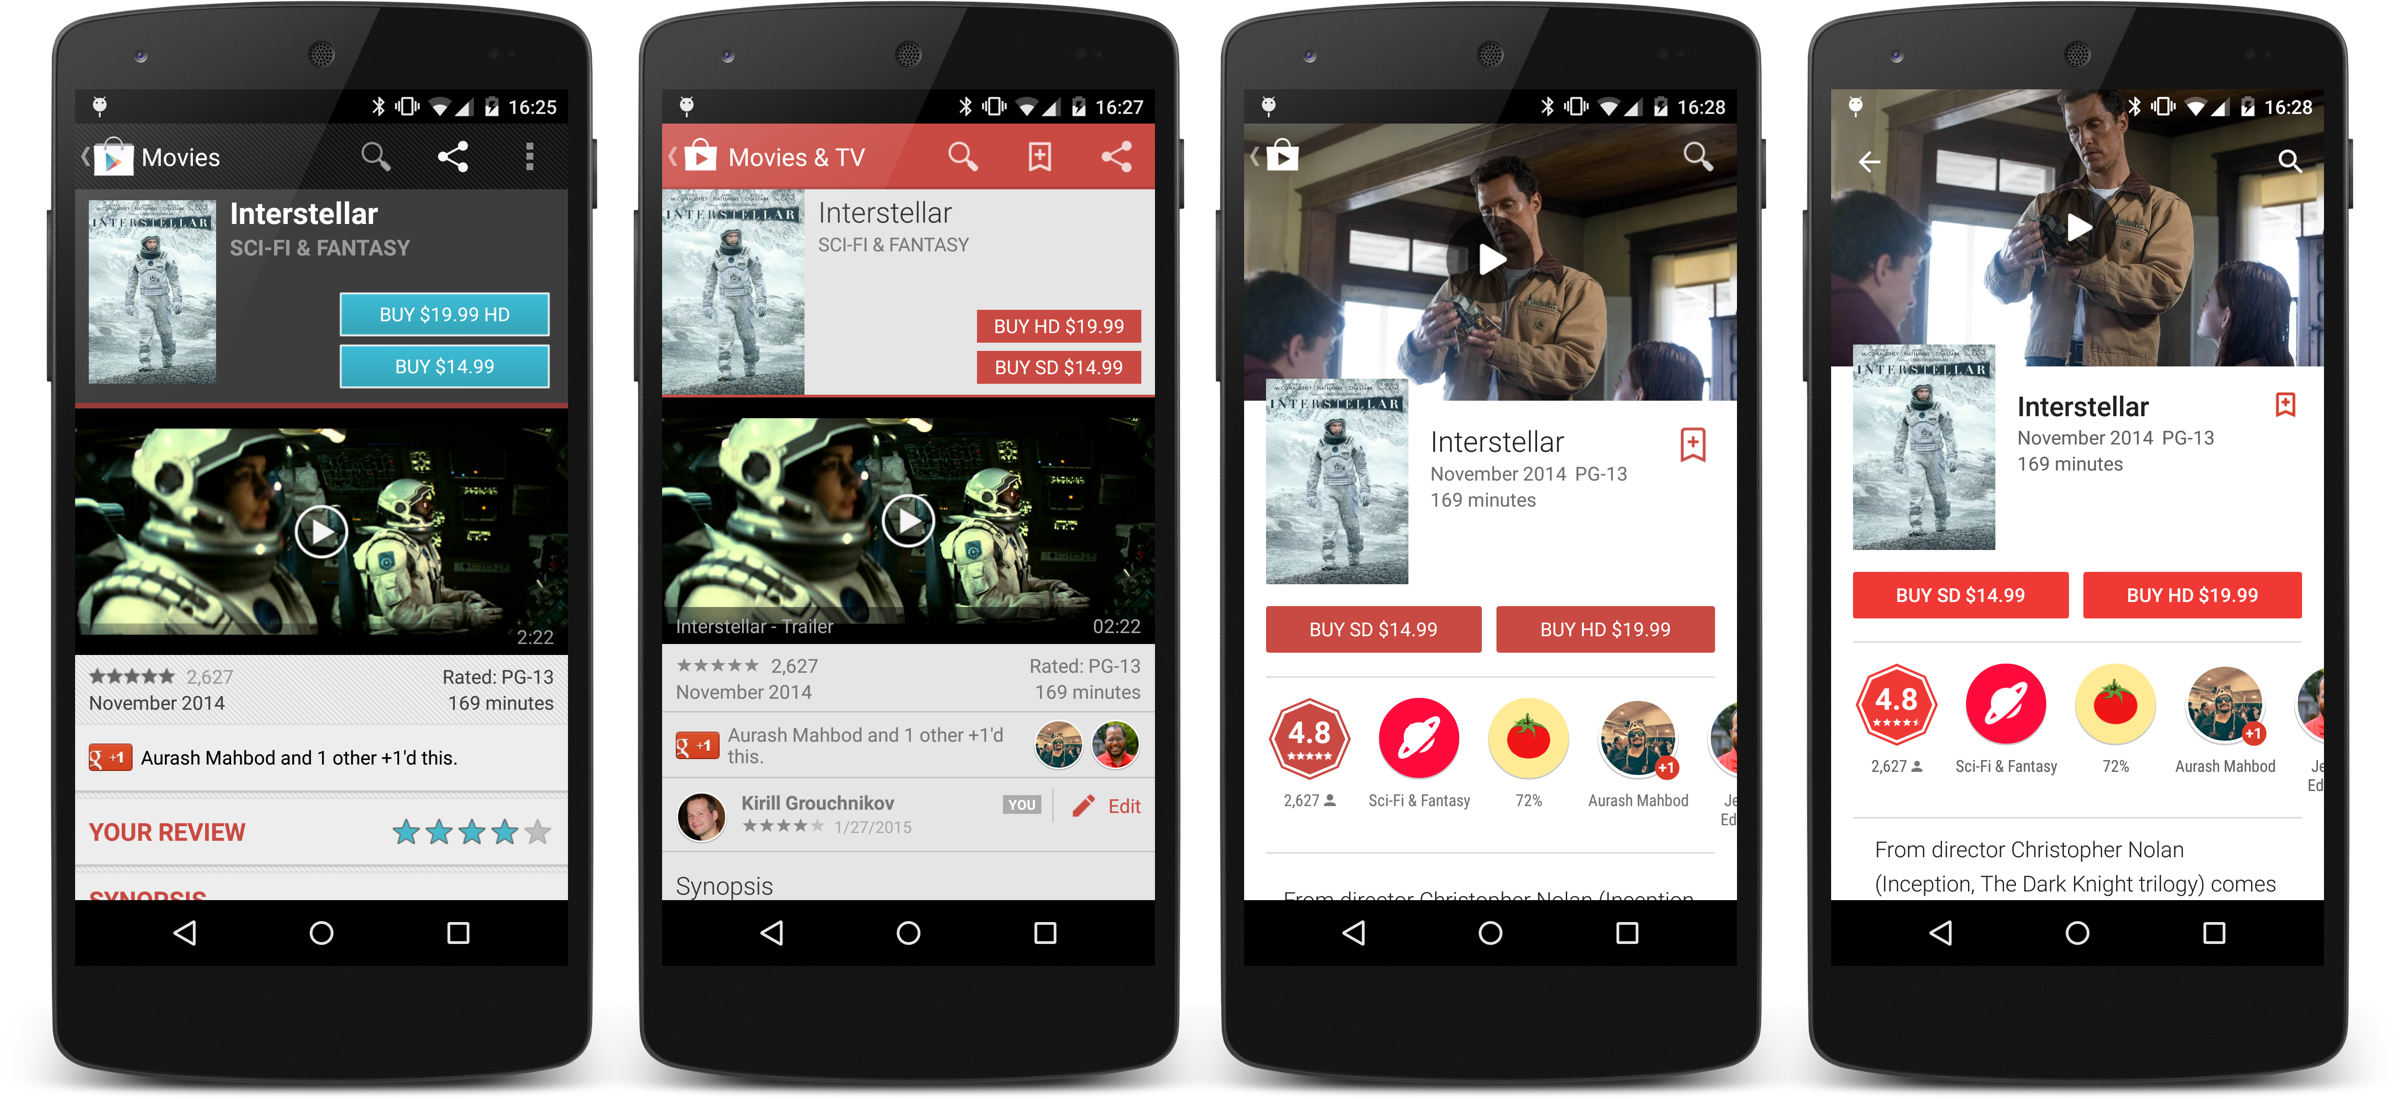 Google Play Store 5.4 brings more immersive listings for ...